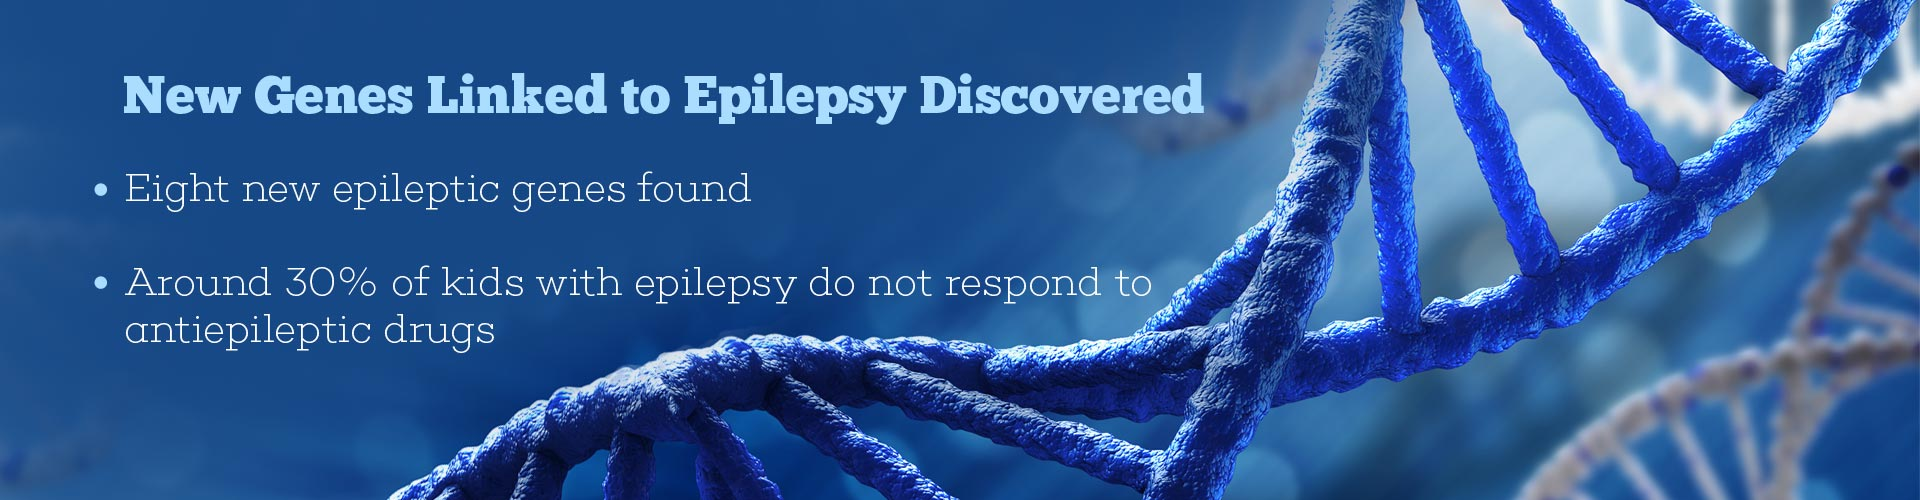 New genes linked to epilepsy discovered - Eight new epileptic genes found - Around 30% of kids with epilepsy do not respond to anti-epileptic drugs